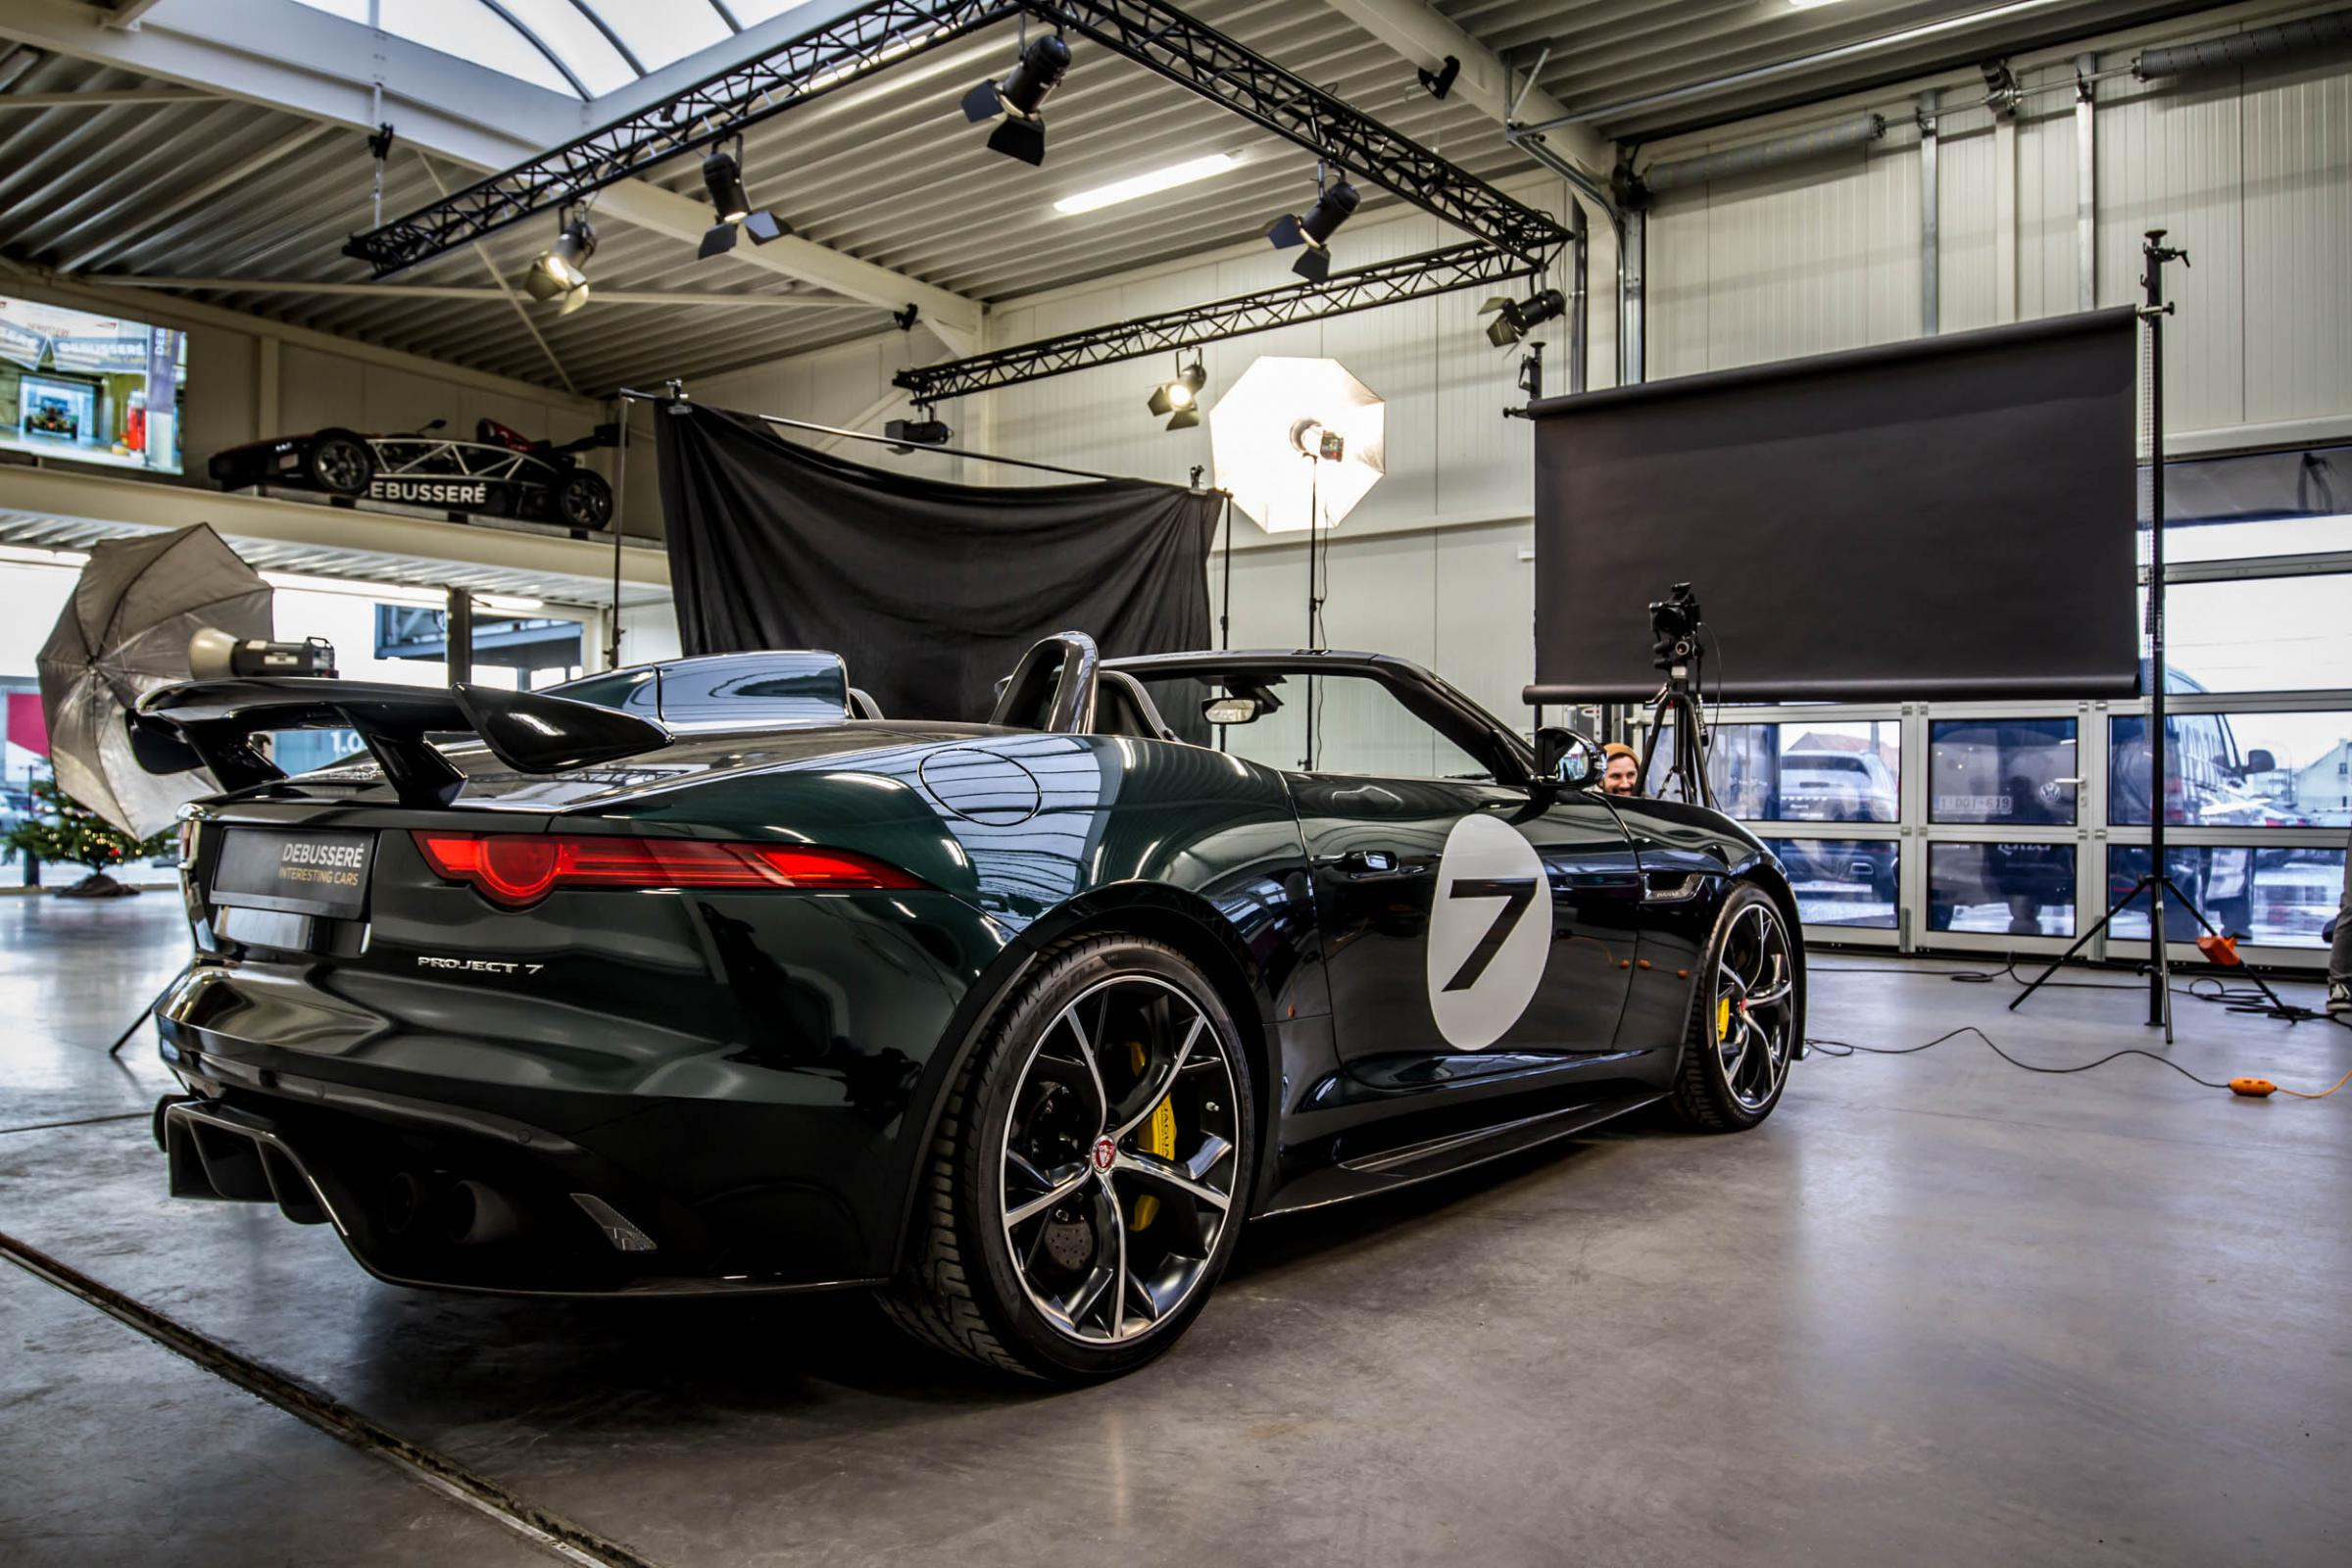 Jaguar Project 7 als decor voor lenticular project!